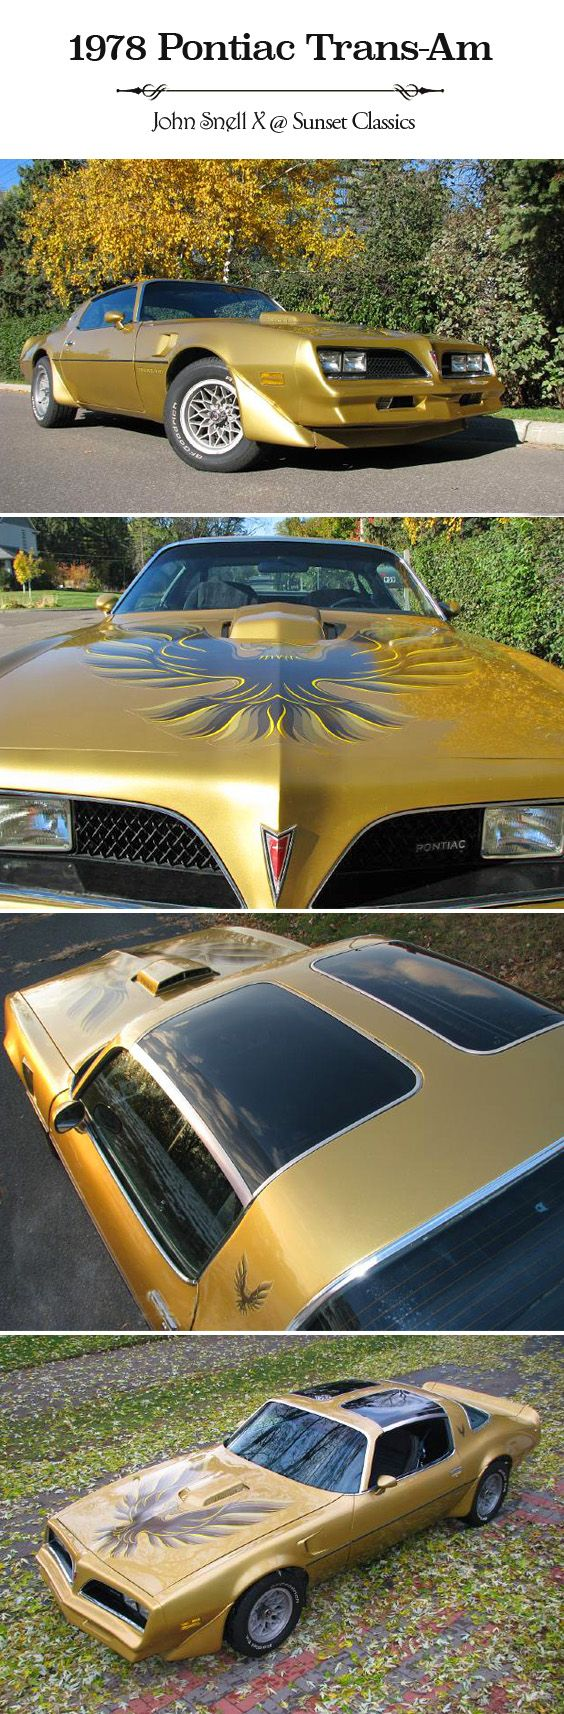 Very cool 1978 Pontiac Firebird Trans Am for sale from Sunset Classics. 1978 is the same year as the Smokey and the Bandit Trans Am made famous by Burt Reynolds